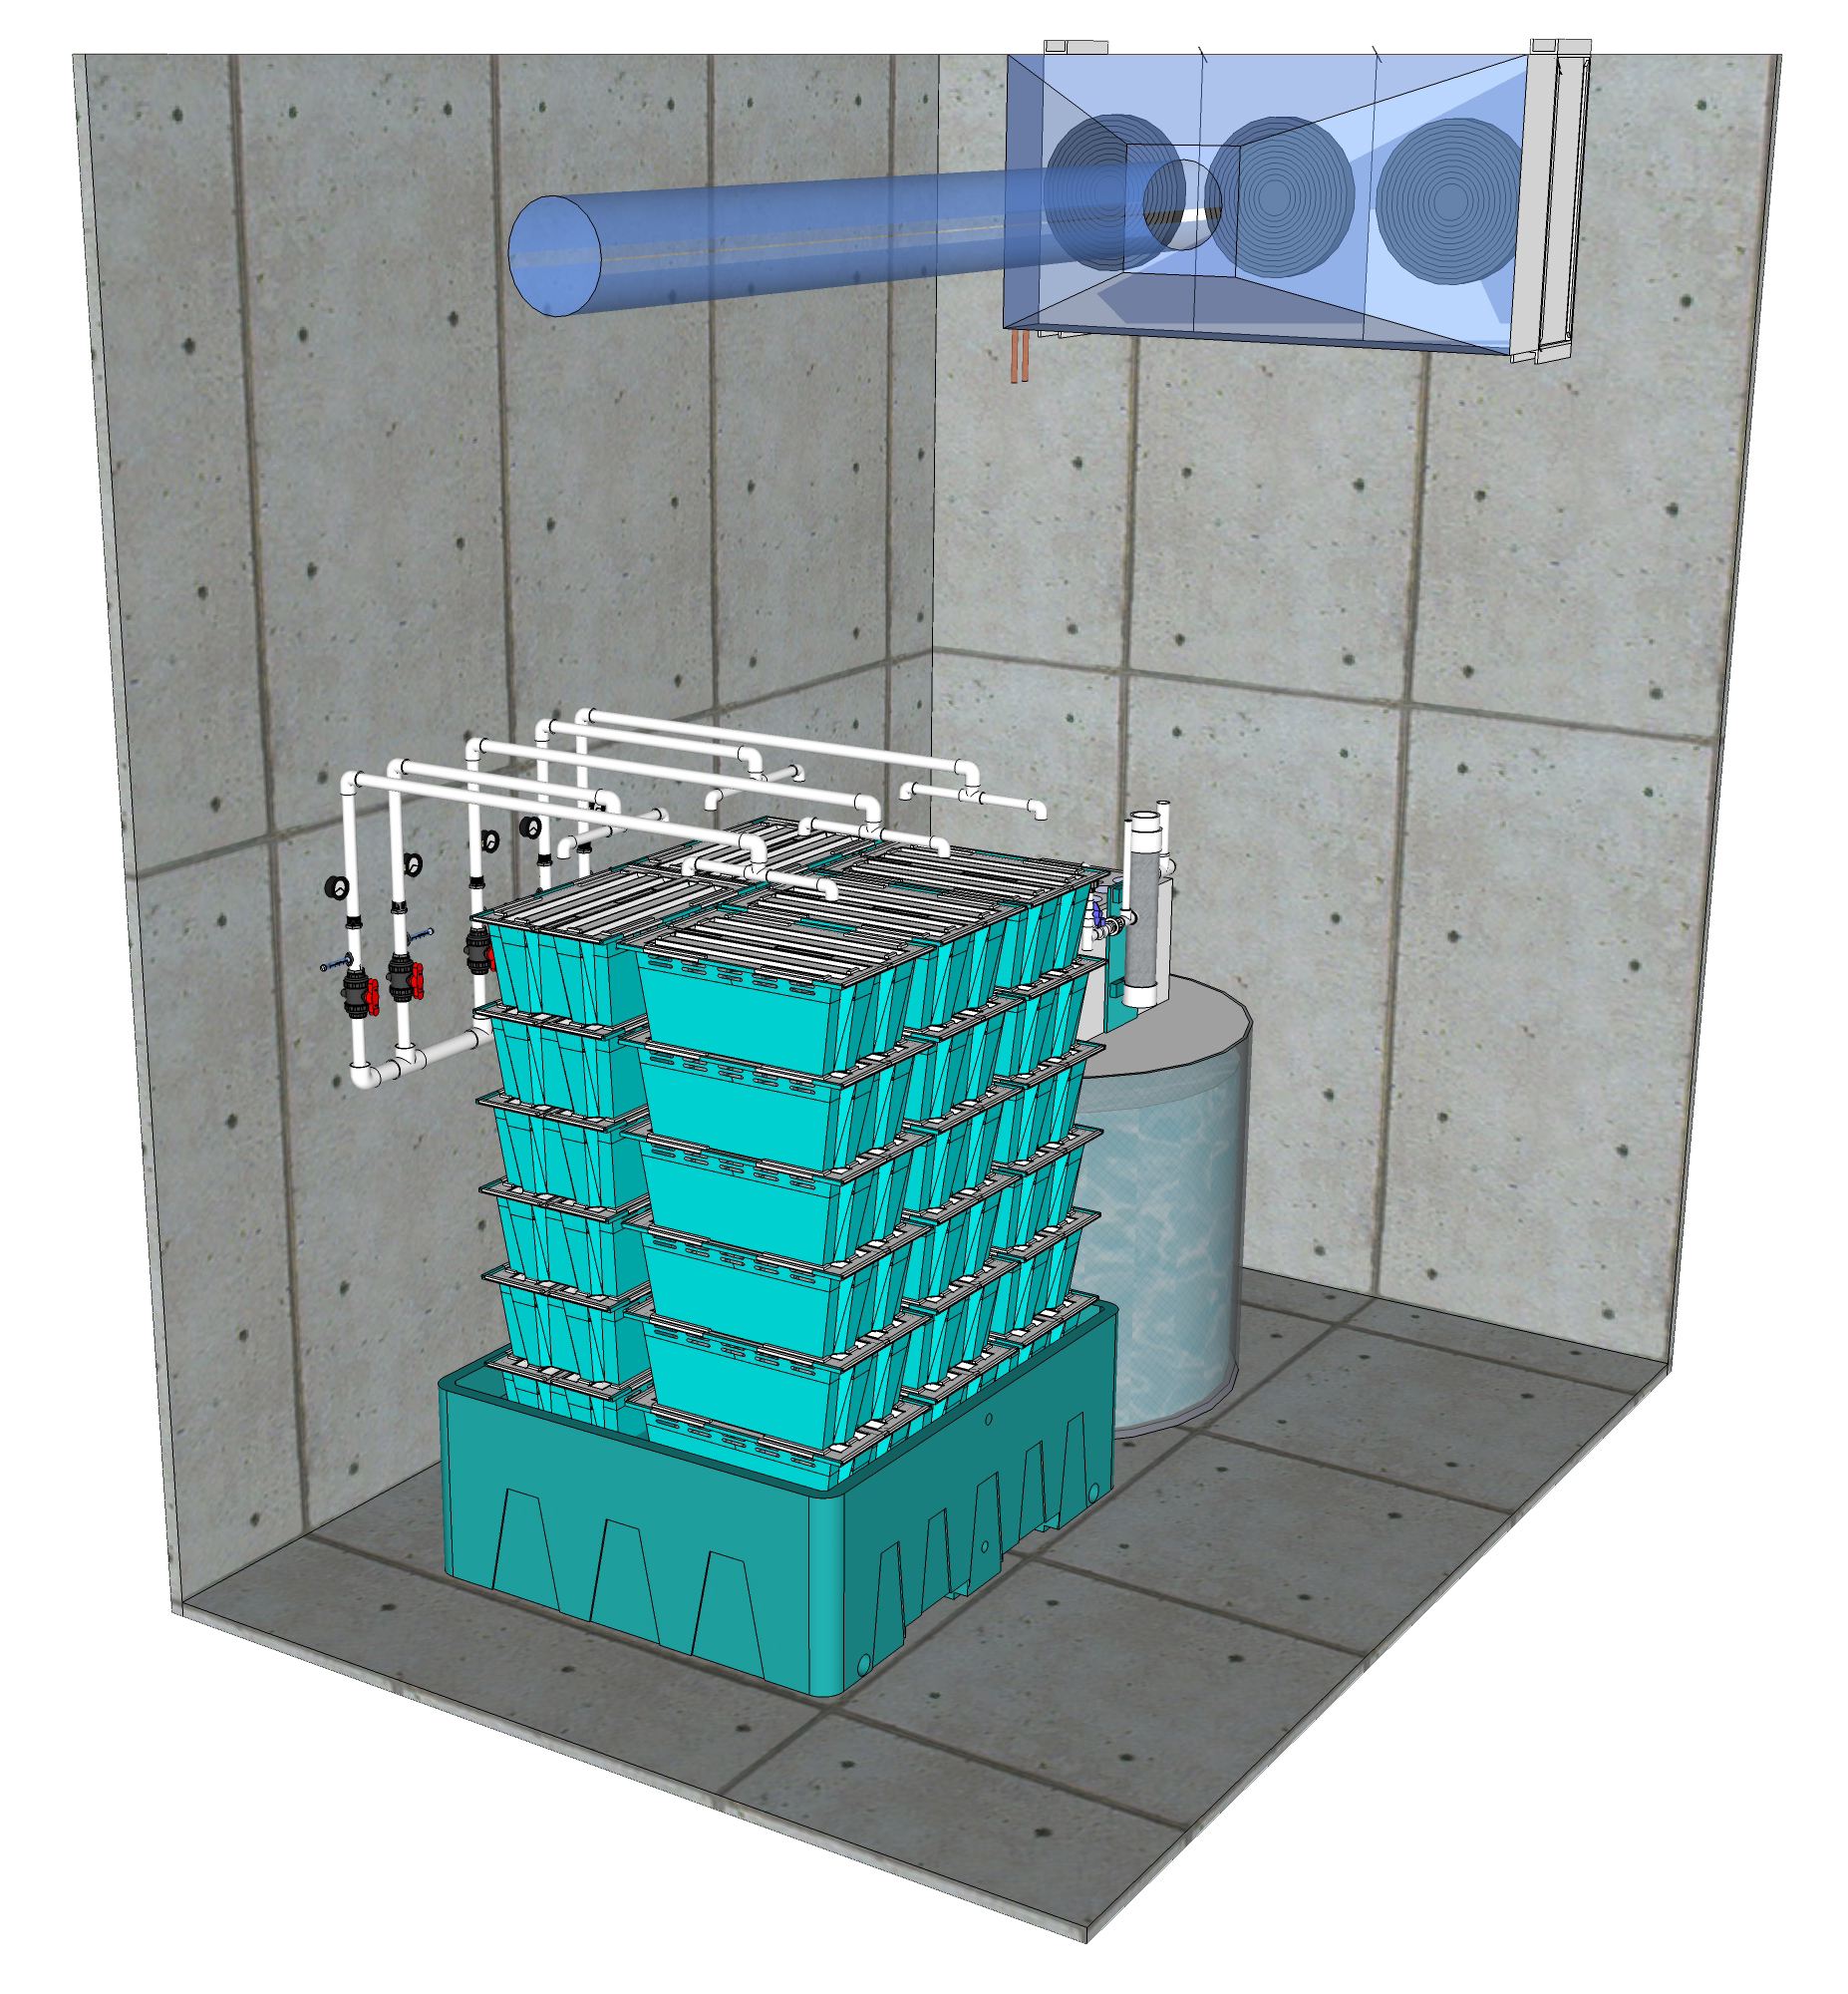 Our 500 lb TS1 System can be transformed into 3,500 lb System when modified to work with Traystor Crate.